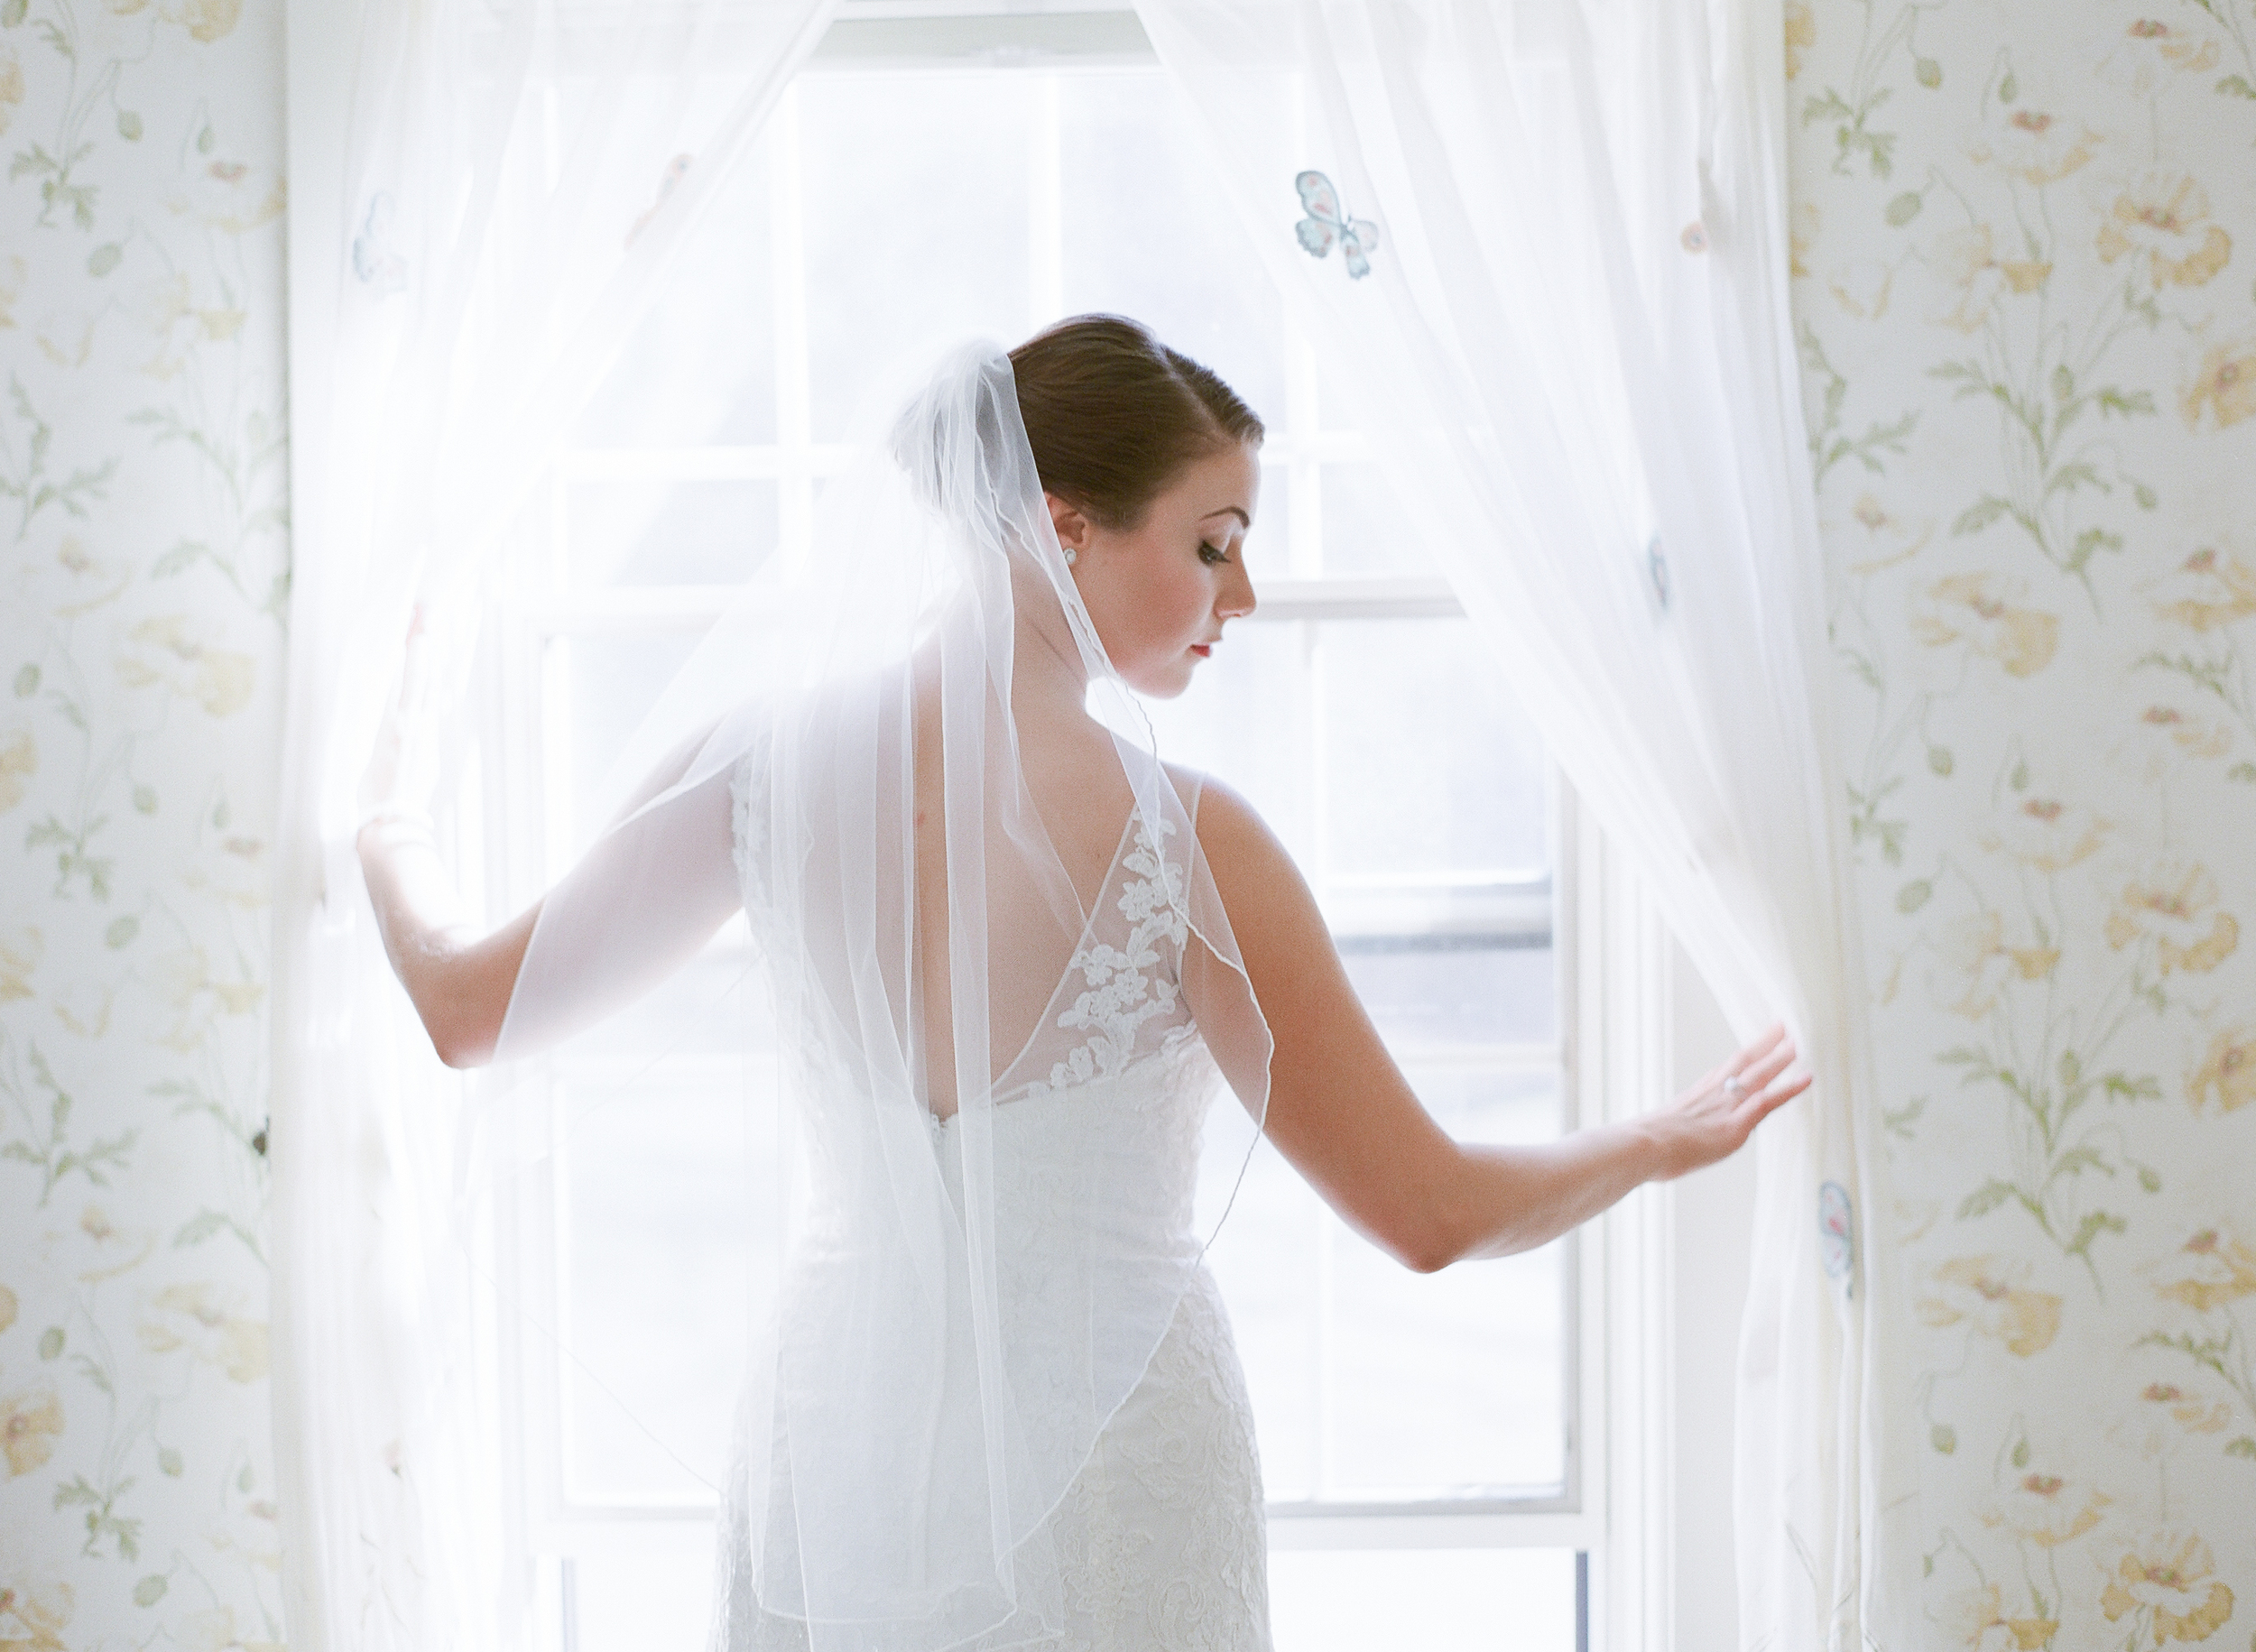 Bridal Portraits in Massachusetts